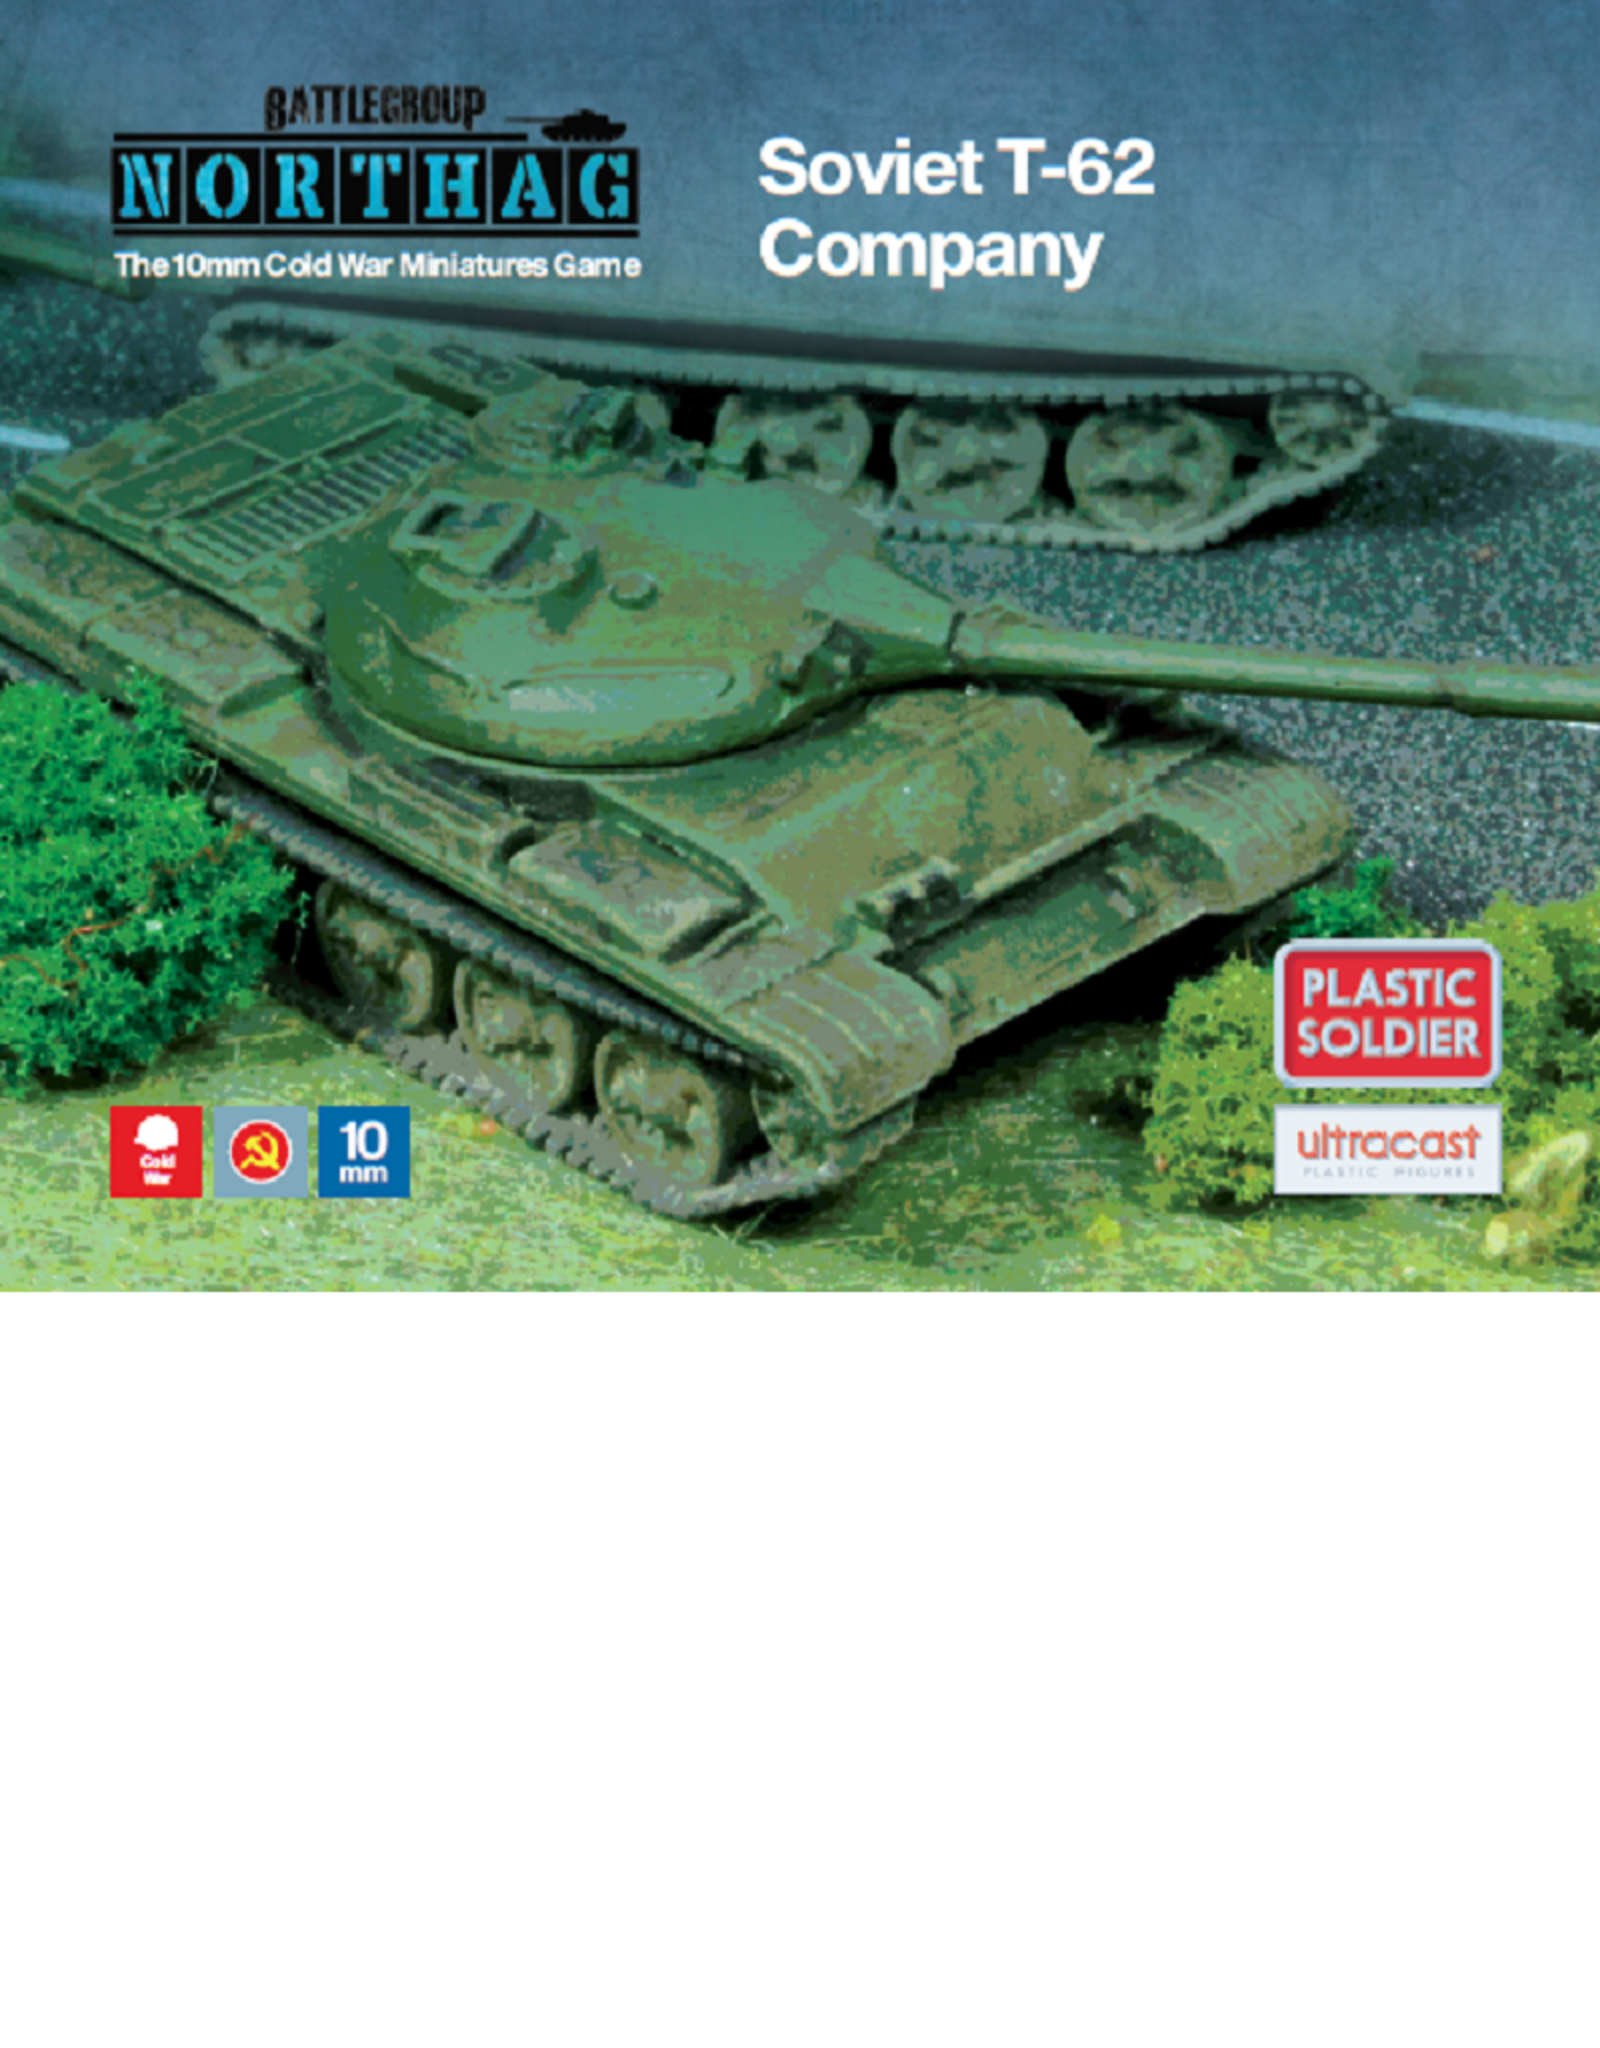 Plastic Soldier Company Soviet T-62 Company